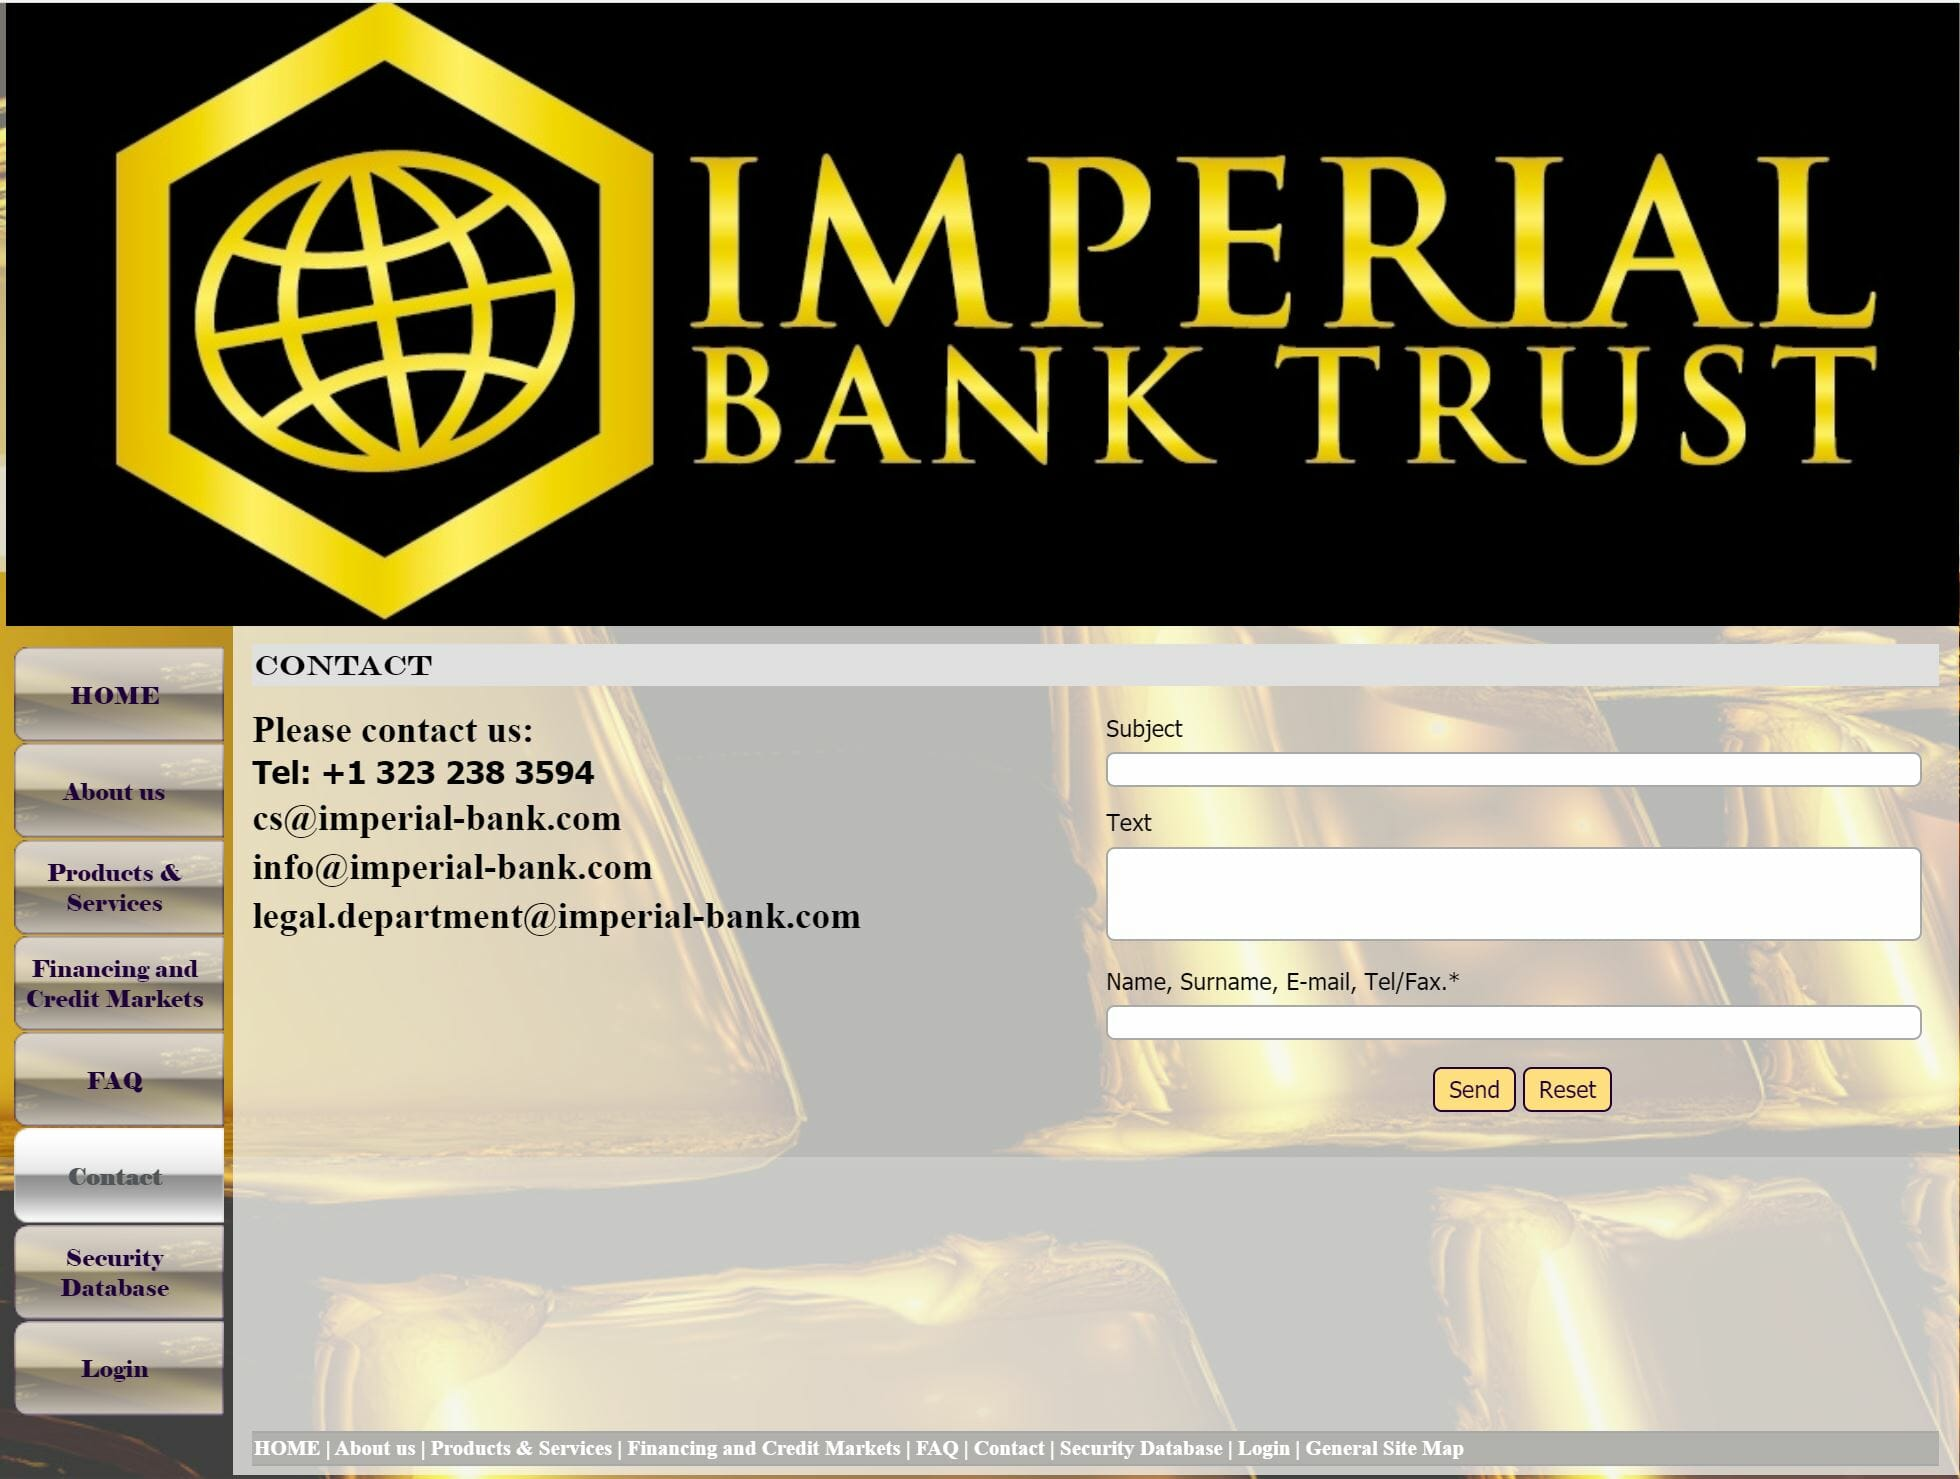 Imperial Bank Trust - No Address